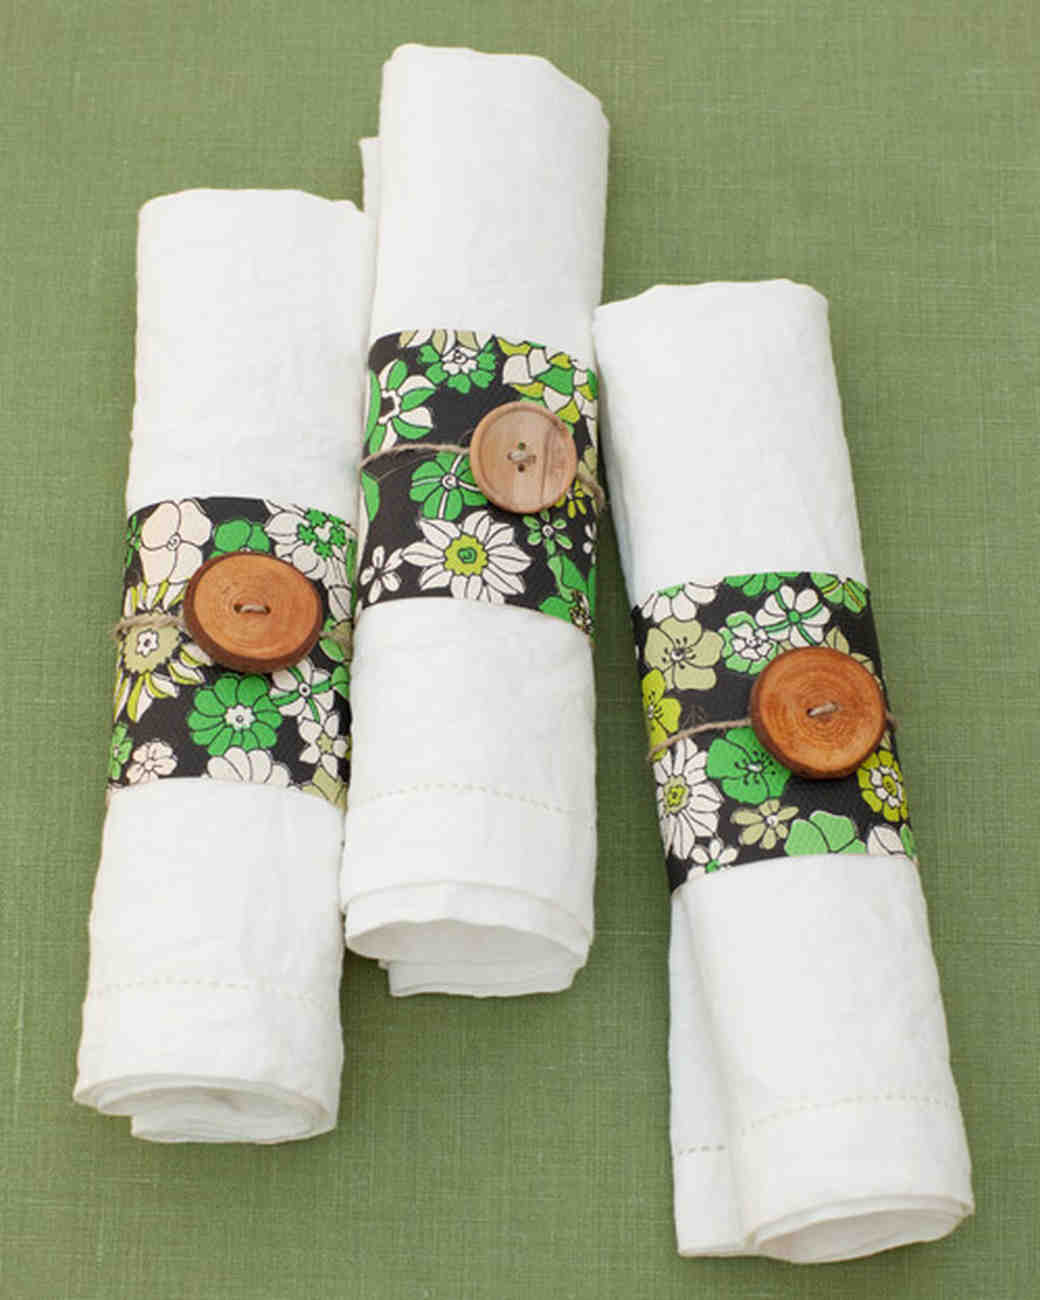 Personalized napkin ideas martha stewart weddings wallpaper napkin rings solutioingenieria Image collections